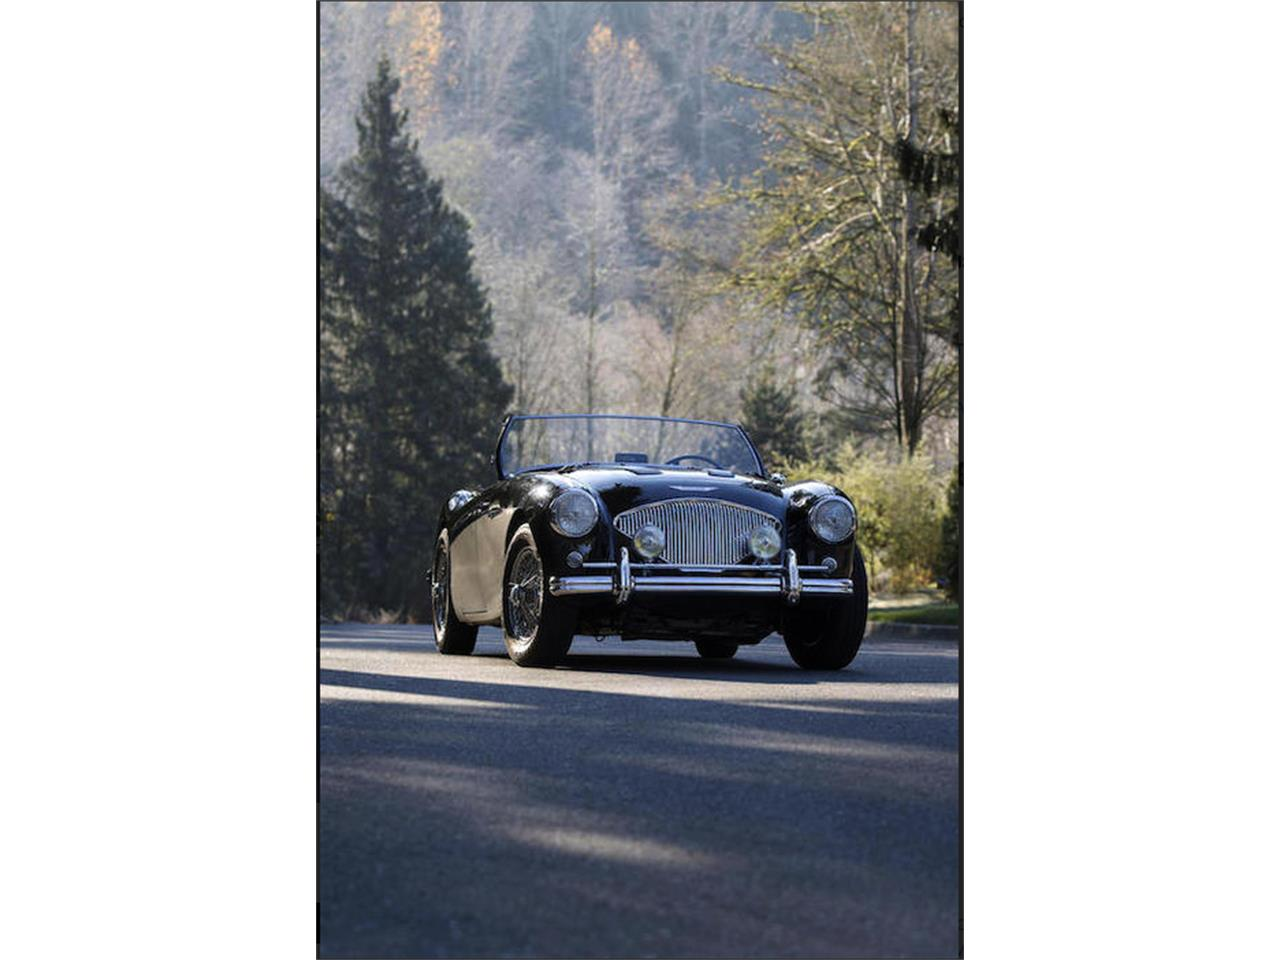 Large Picture of Classic '55 Austin-Healey 100-4 - $89,900.00 - LT01